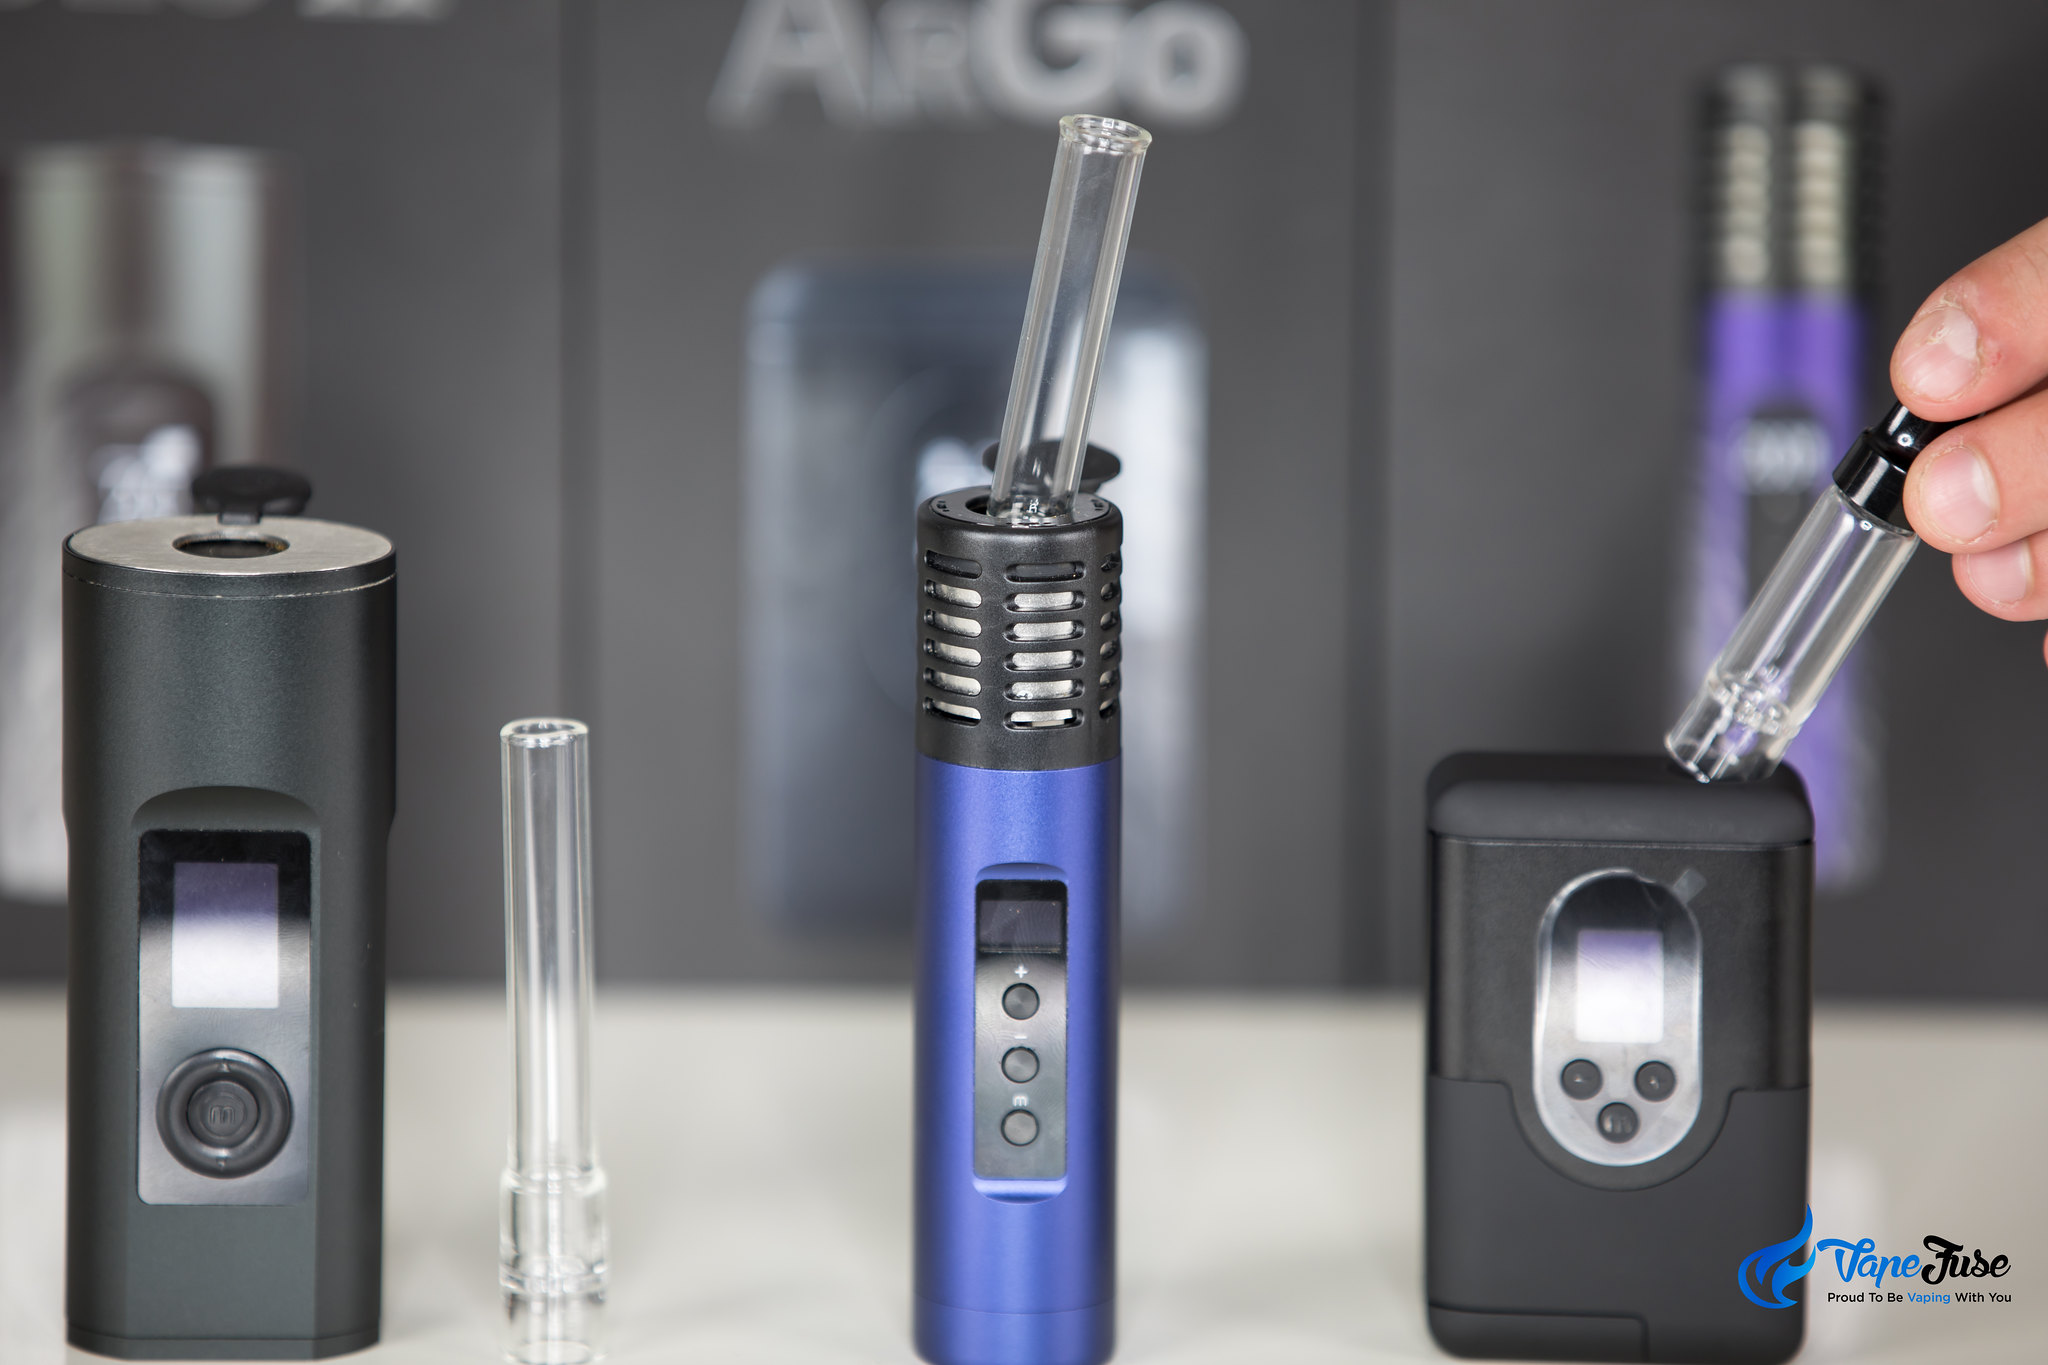 ArGo has a different size aroma tube